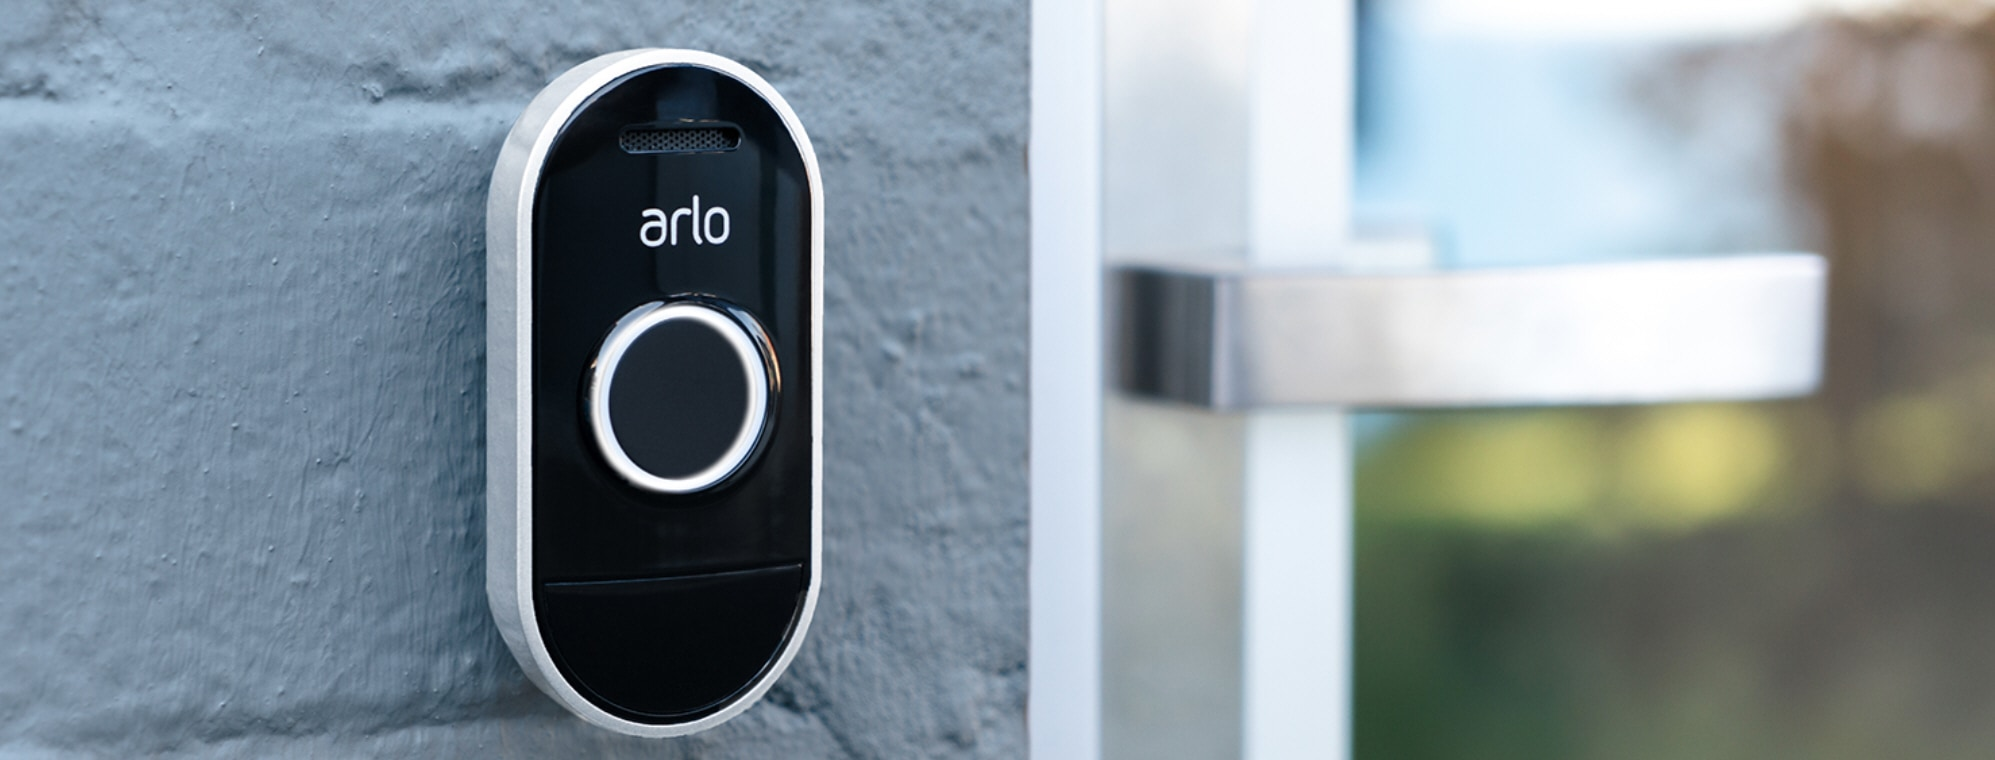 Arlo Audio Doorbell and Chime are now available in Australia